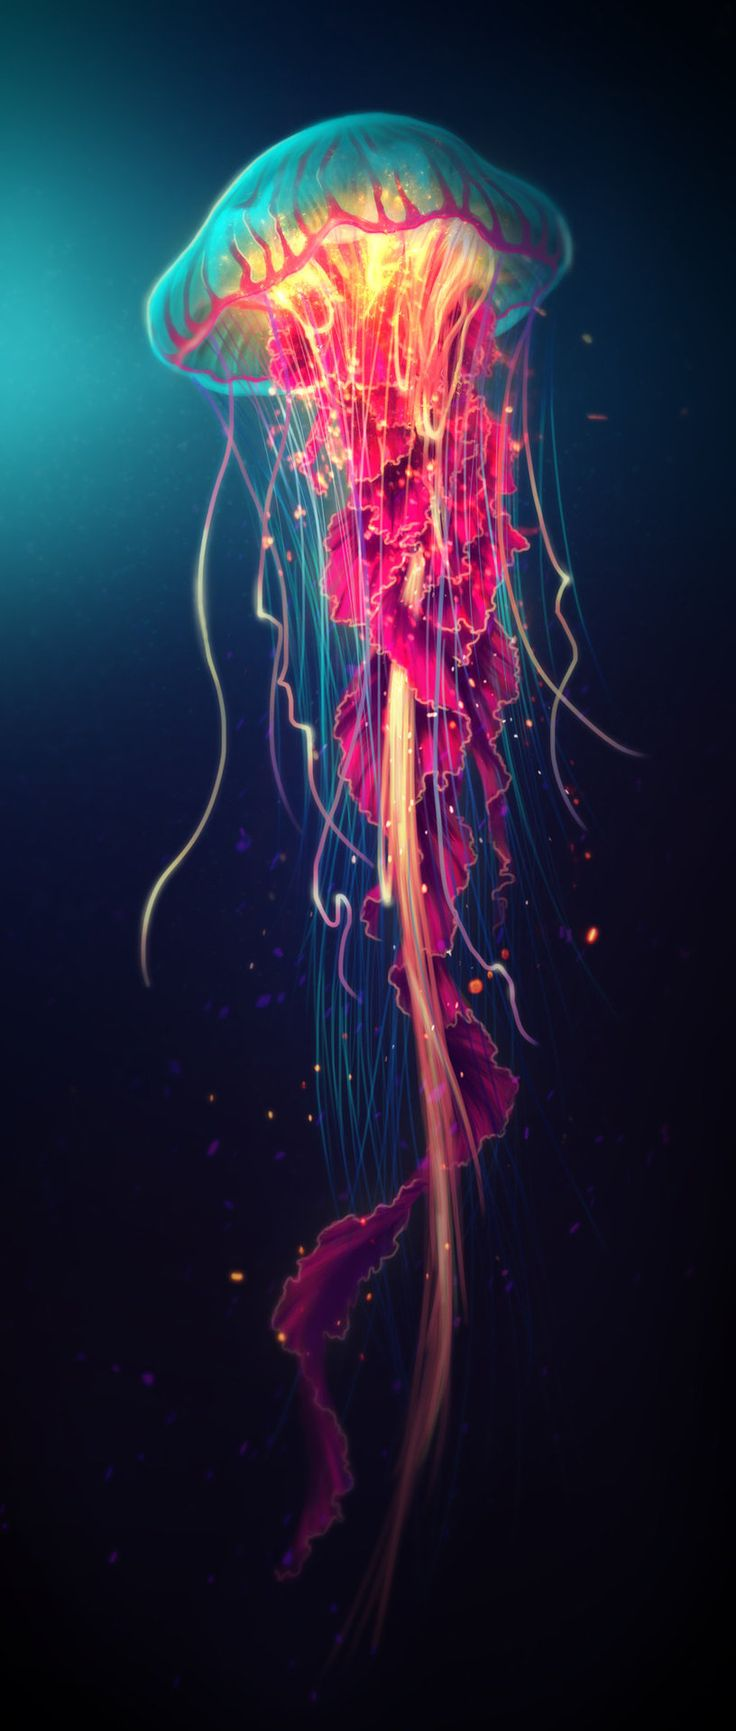 Jellyfish by shobey1kanoby | re-pin | follow me on twitter http://twitter.com/southfloridah2o ♥.¸¸.•´¯`♠☆ #SaltLife #SouthFloridaH2O